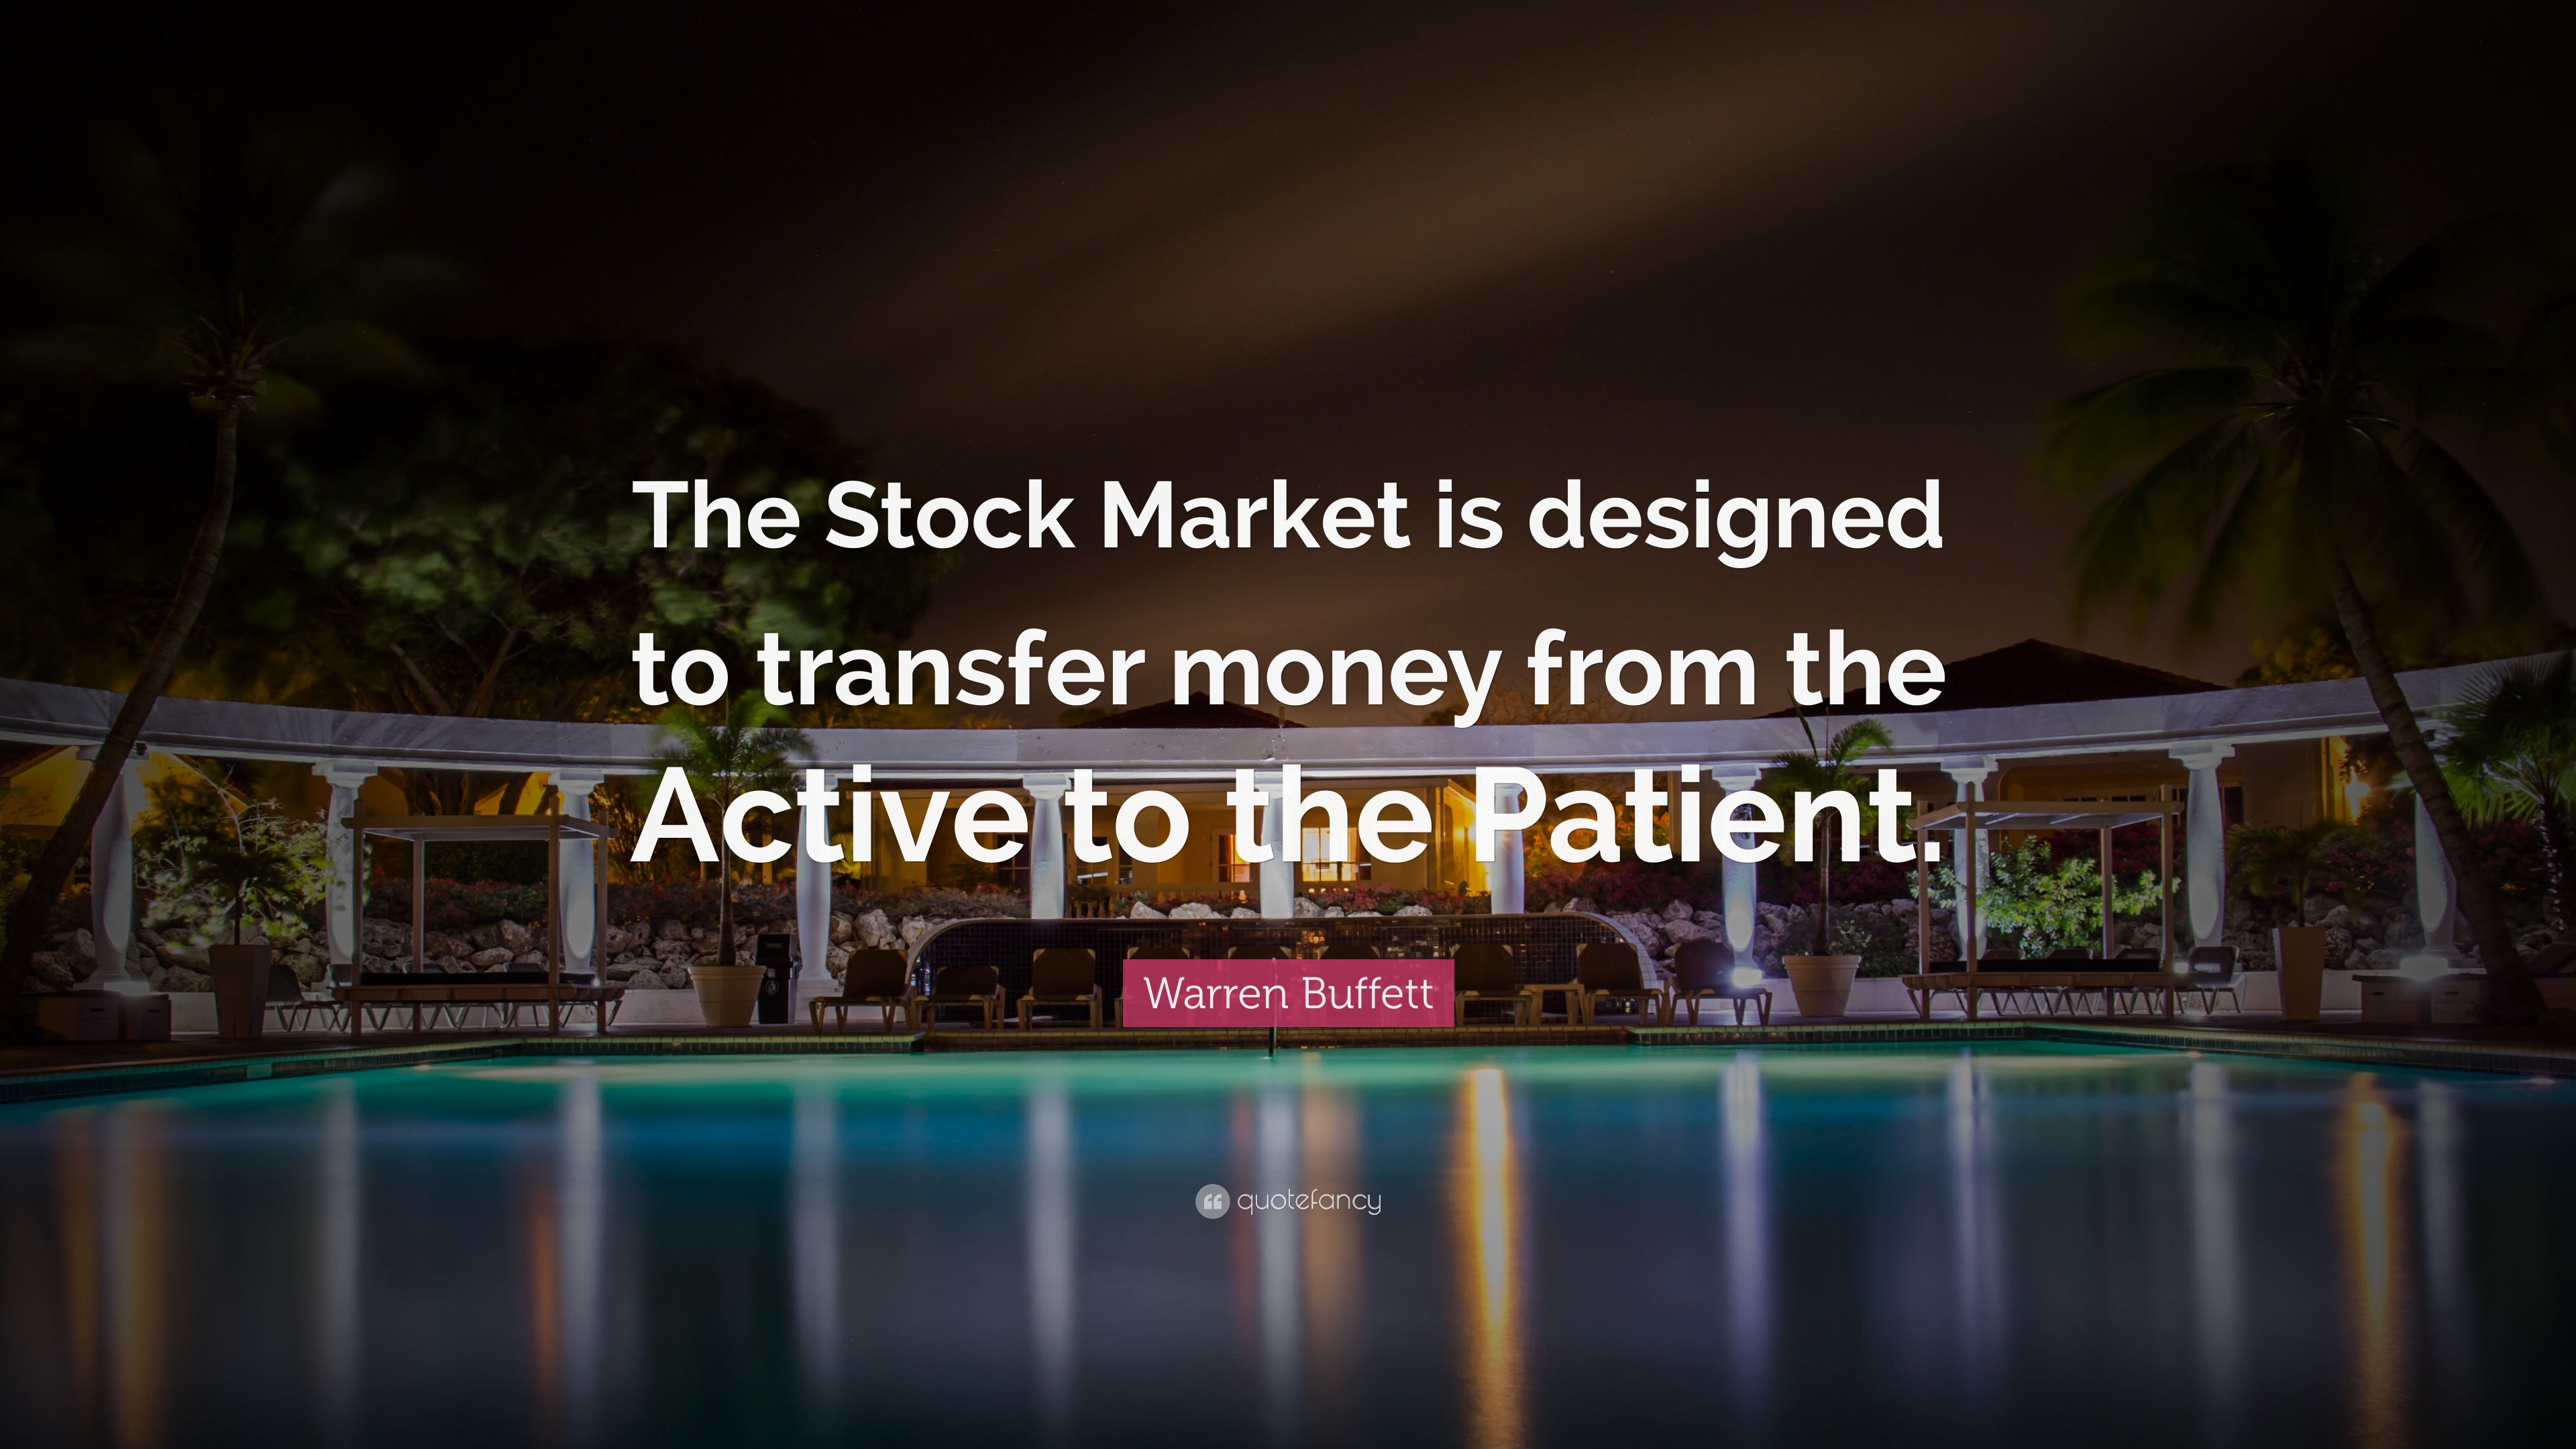 Quotes About Money The Stock Market Is Designed To Transfer From Active